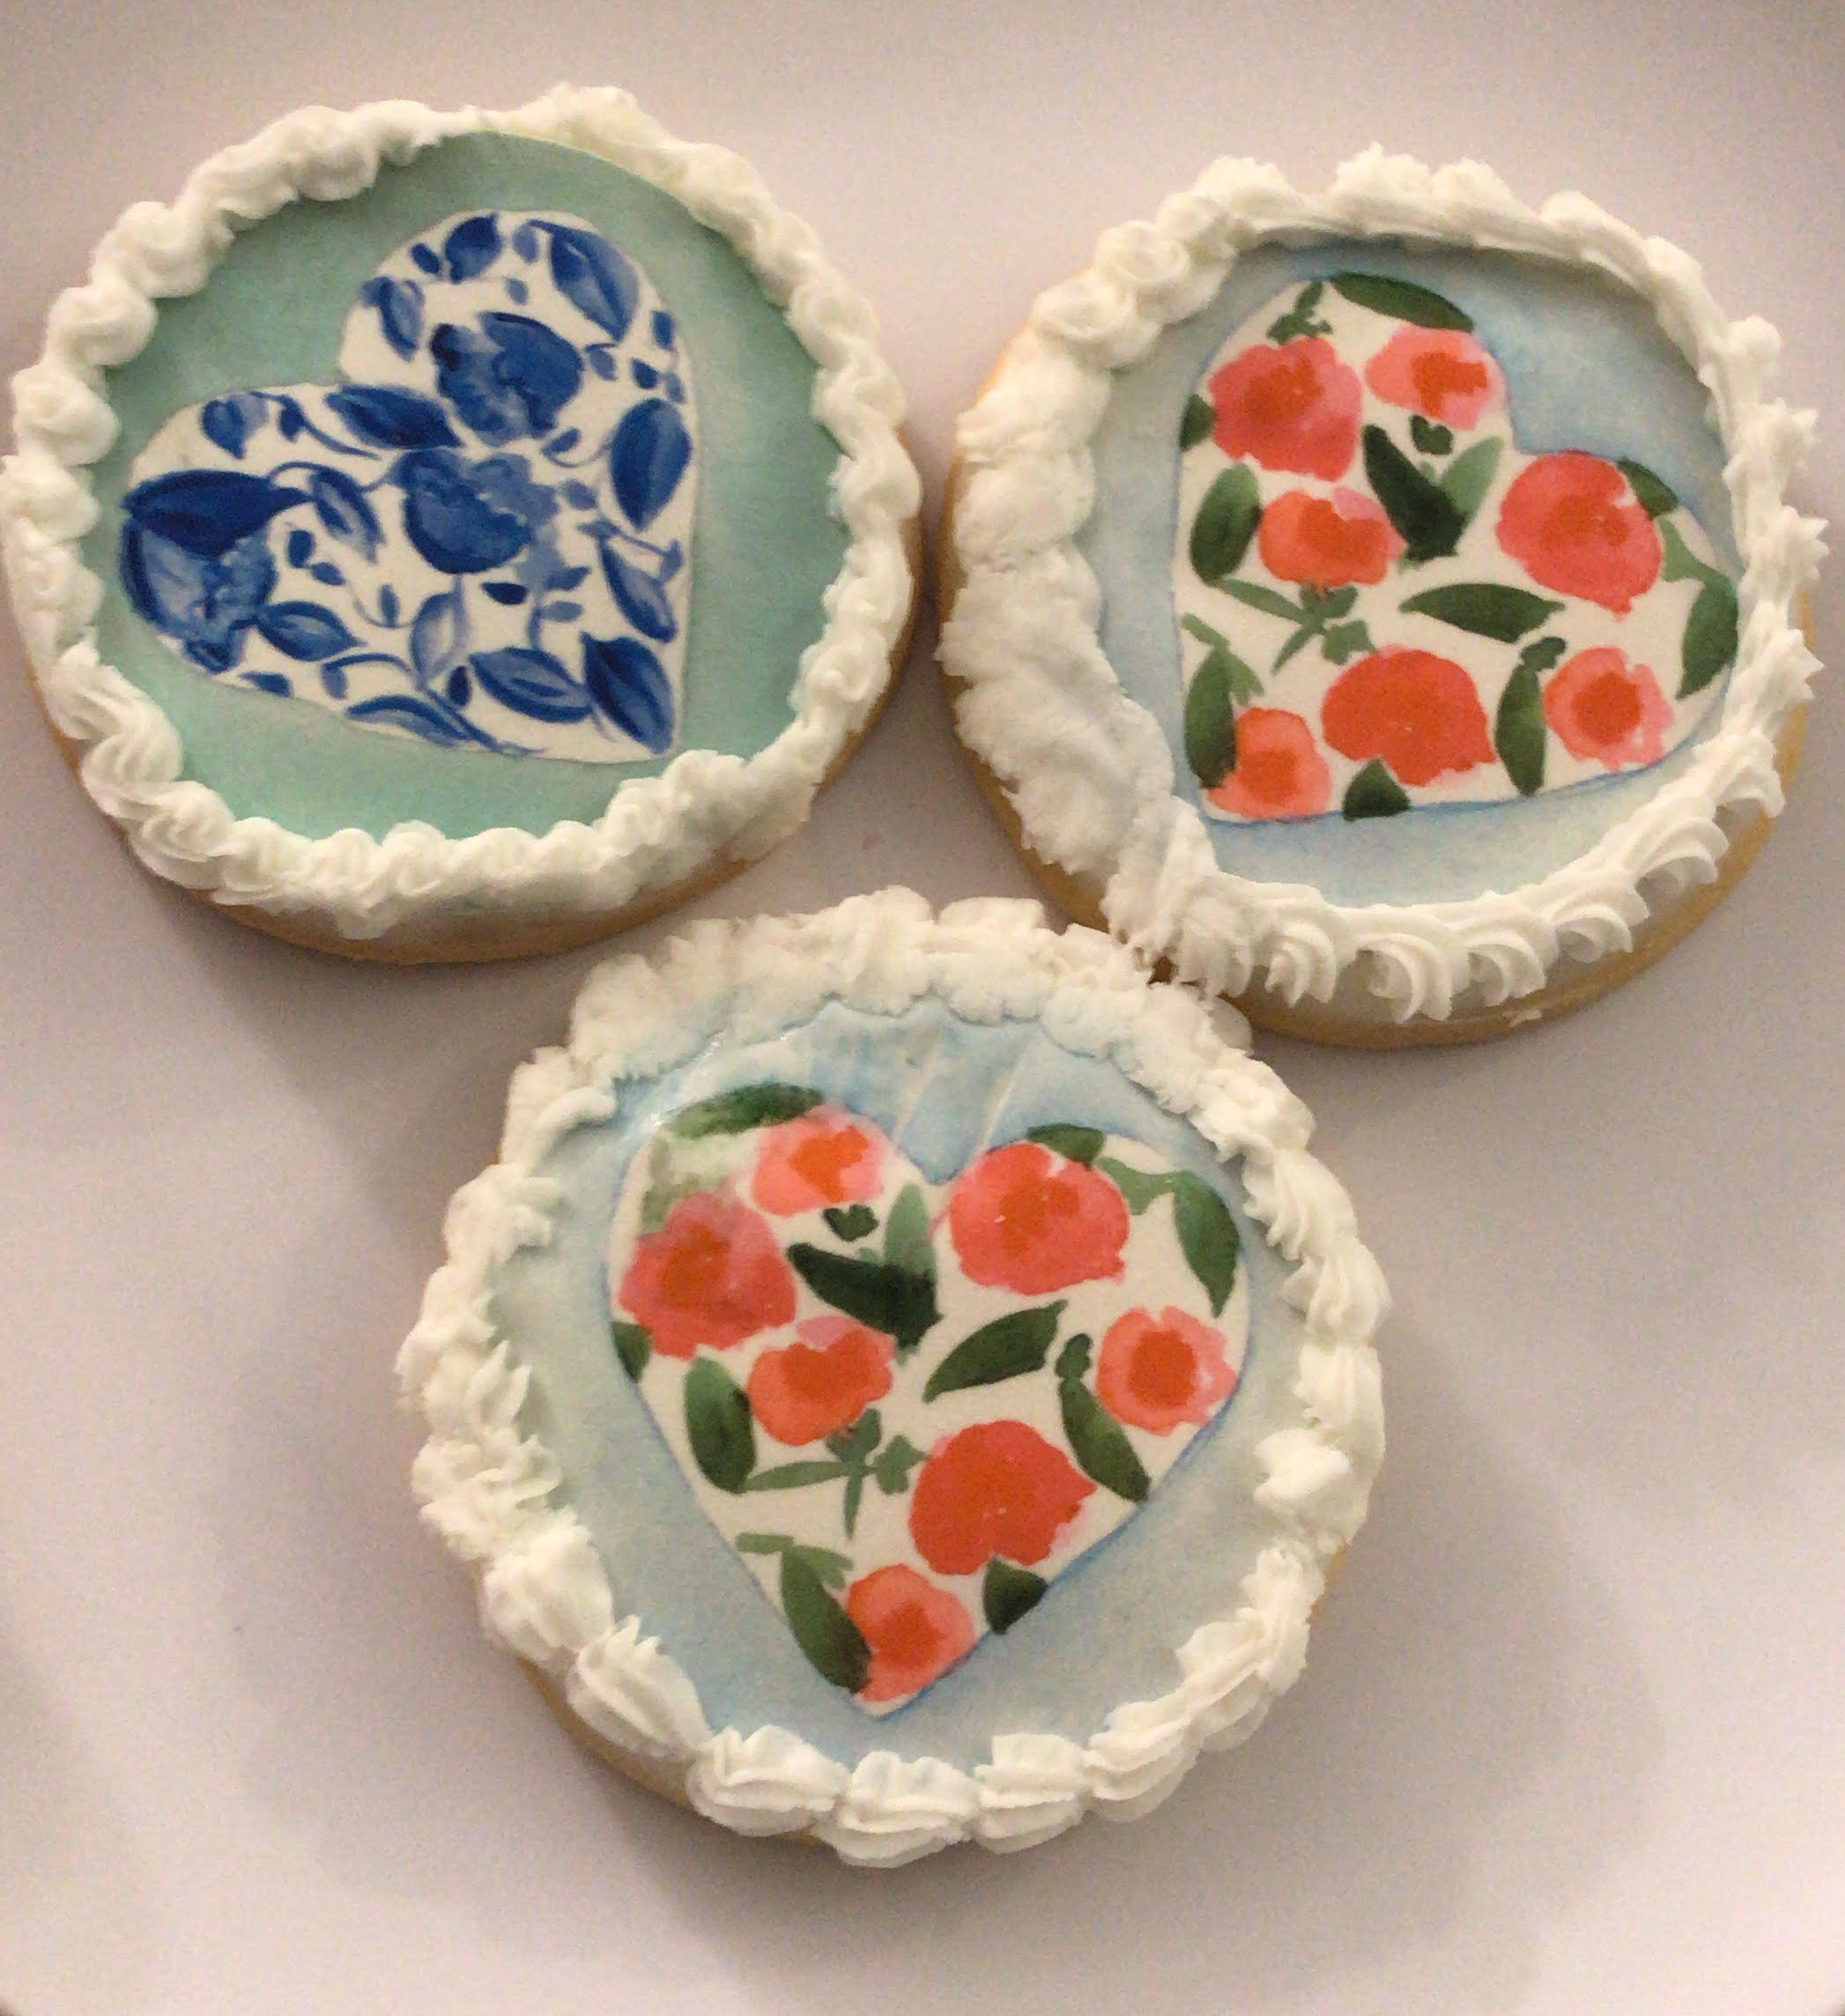 4. Galentine's Day Treats - Picked up cookies for a Galentine's Day party from Tremont Goodie Shop. Watercolor heart cookies with design made my local designer bekka: see what i sea designs.